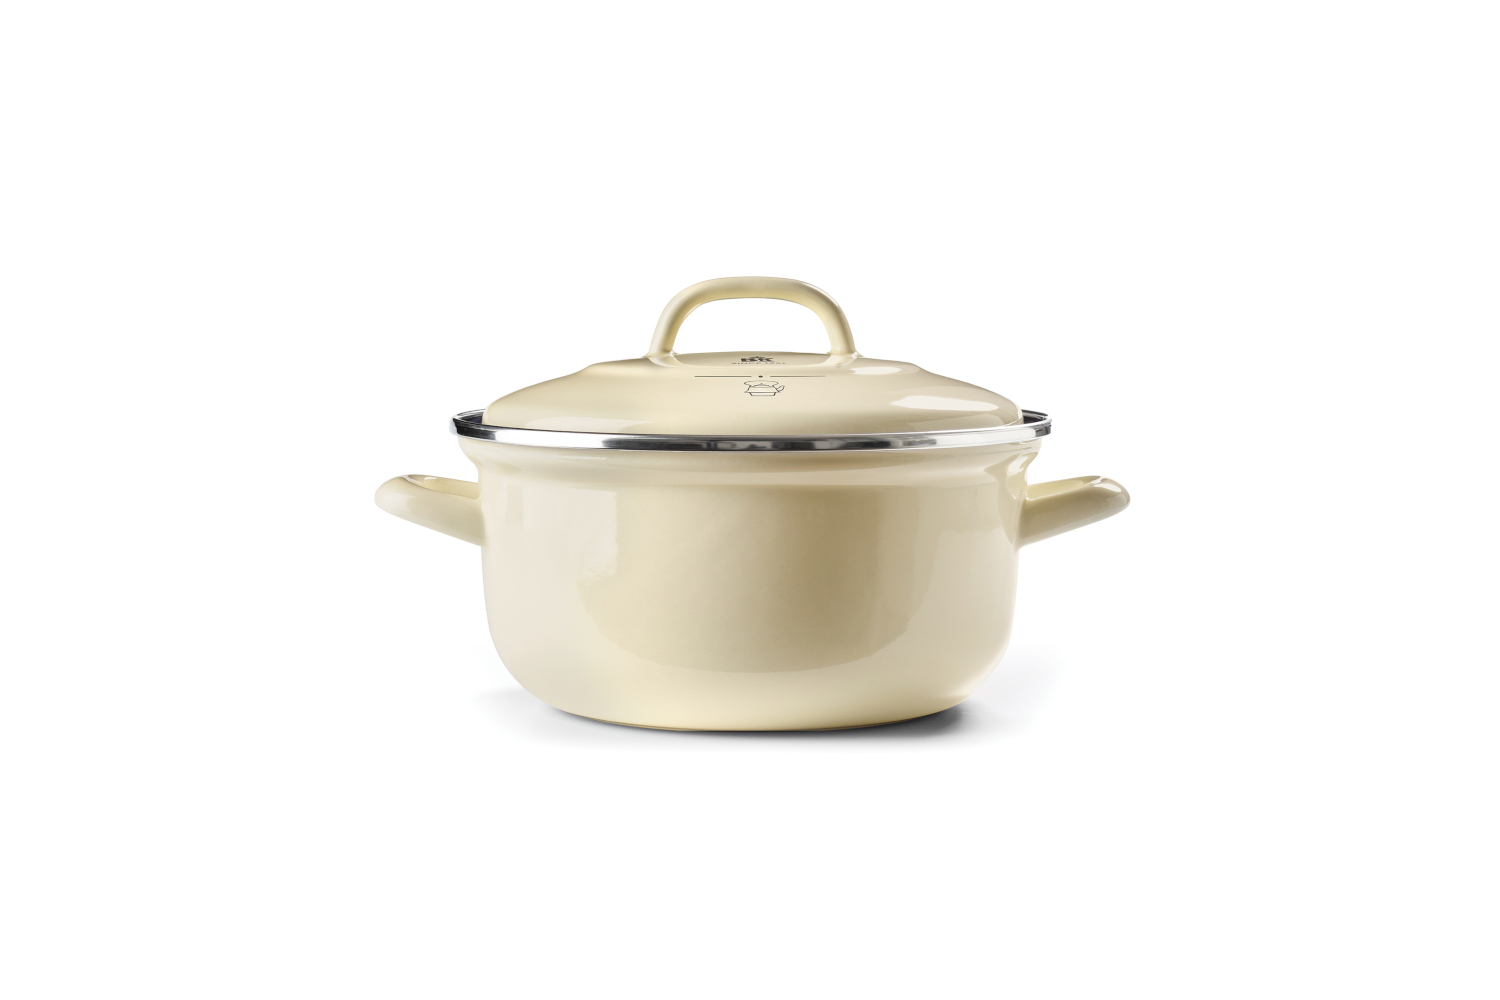 BK Enameled Steel 3 1/2 Quart Dutch Oven - Cream